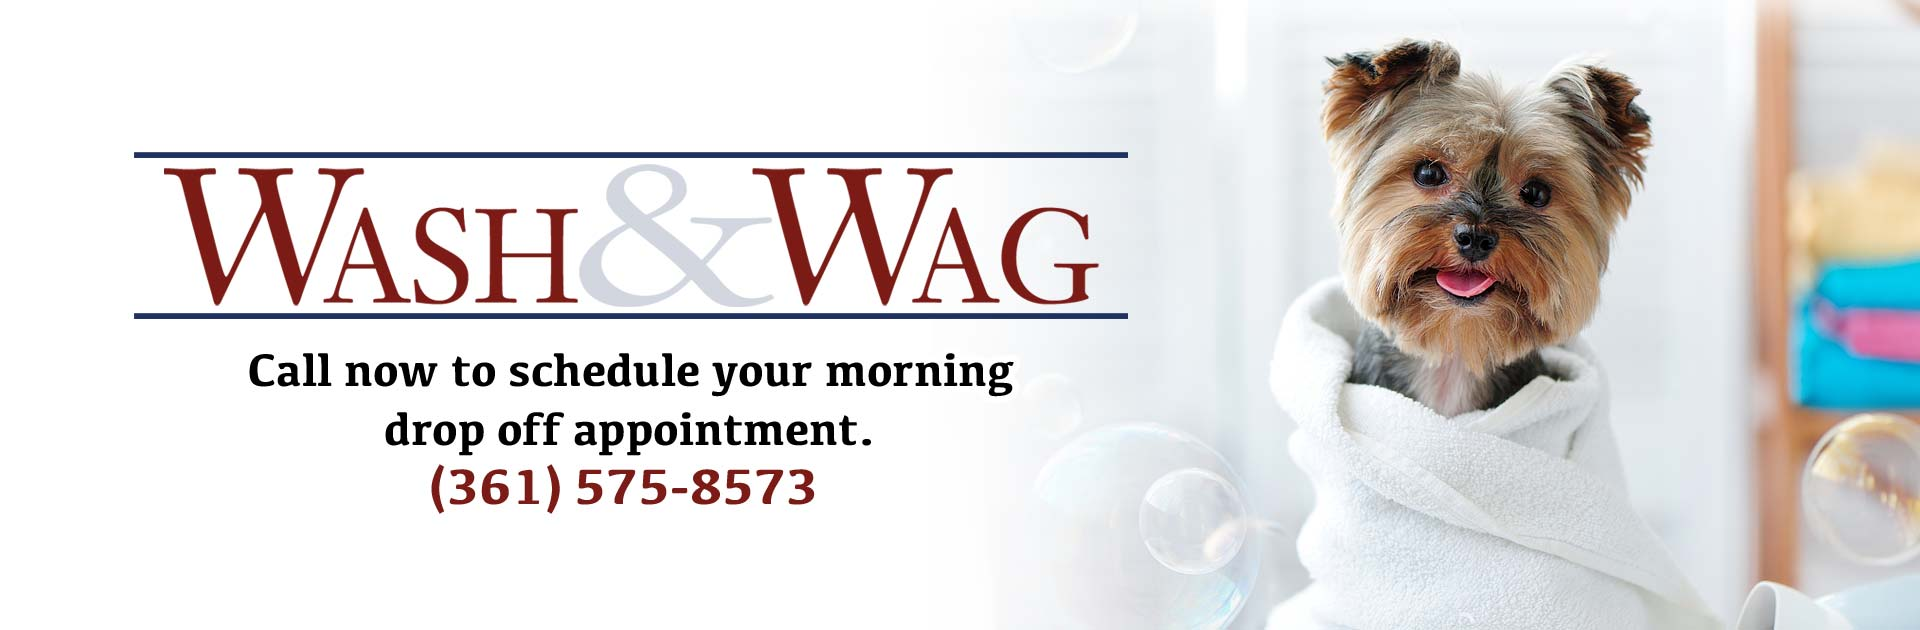 DOCPAC Wash & Wag event!  Call now to schedule your morning drop off appointment (361) 575-8573